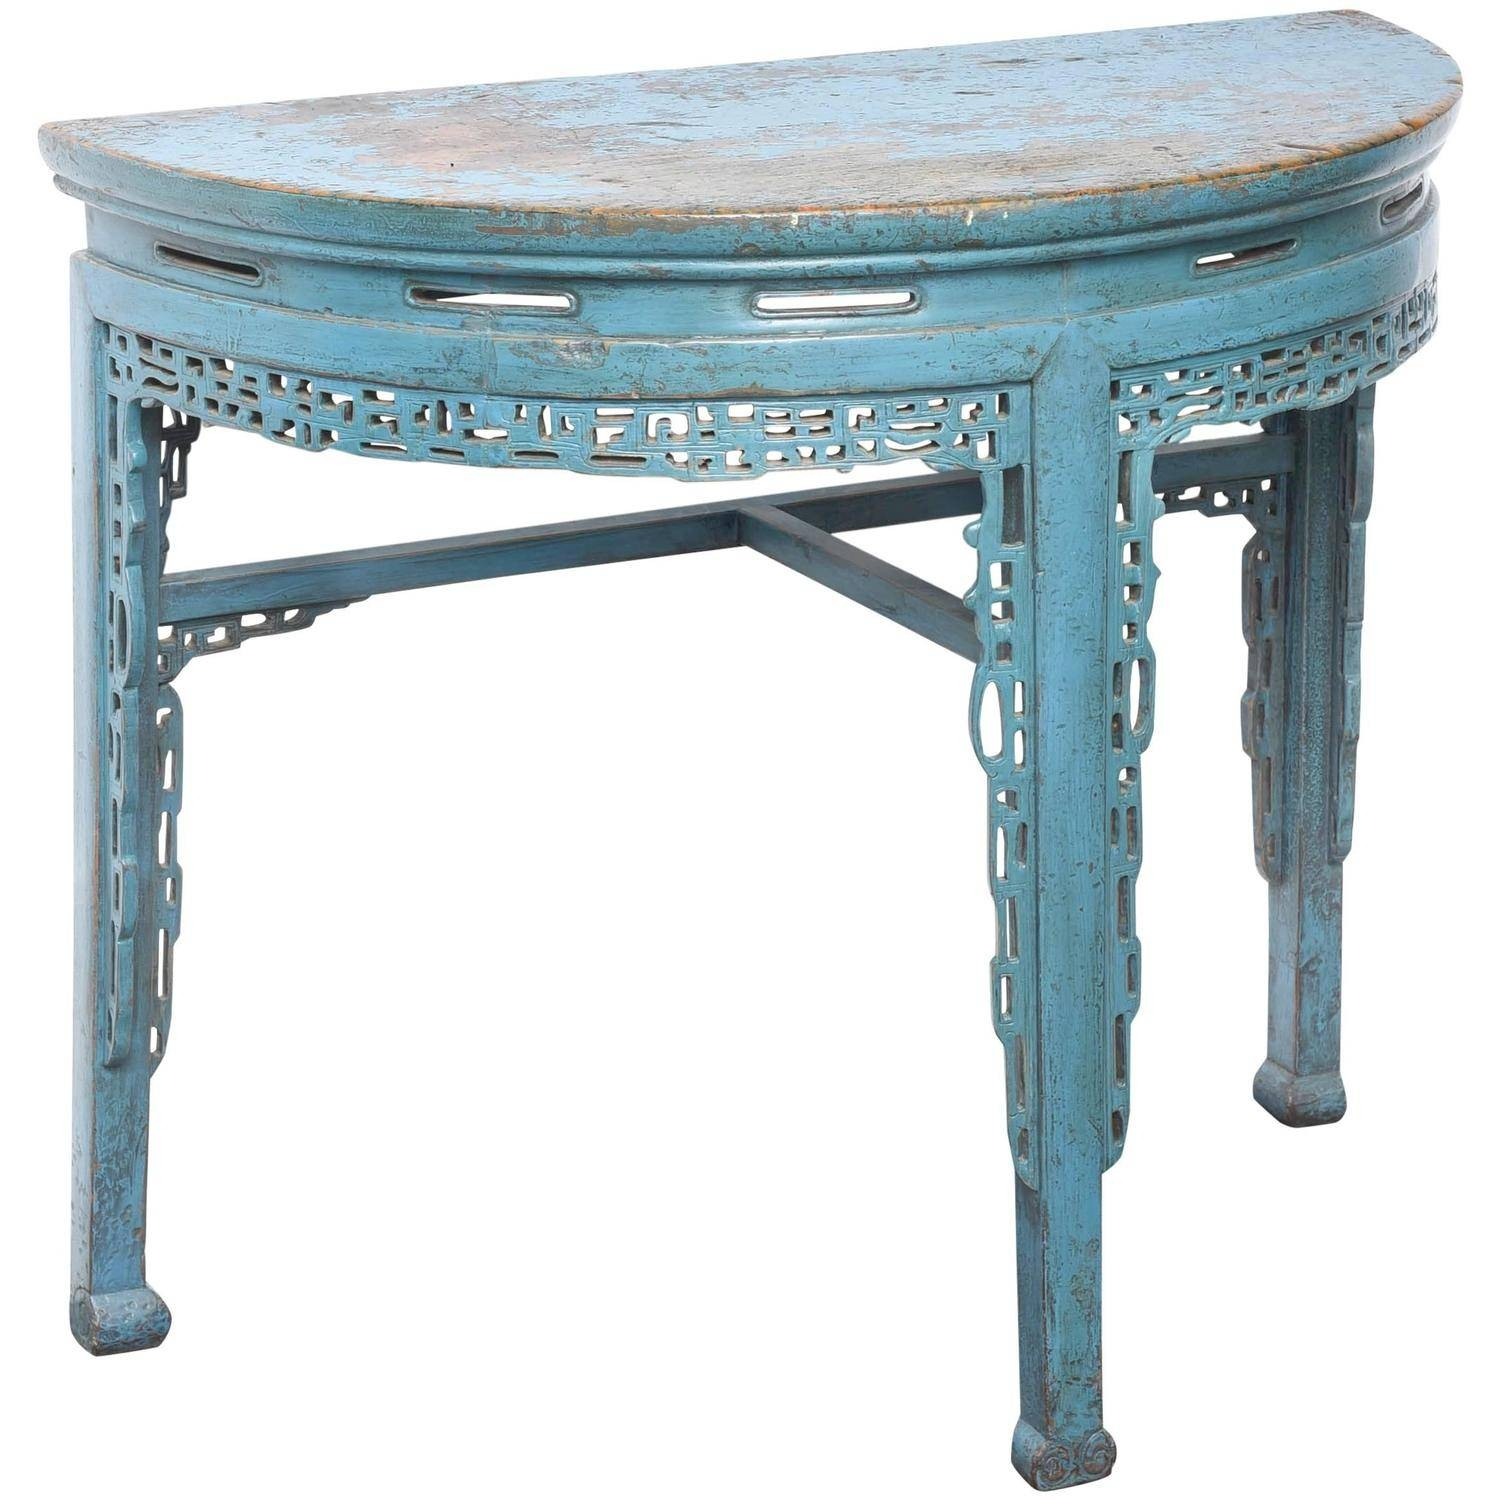 19Th Century Chinese Hand-Painted Half Round Console Table At 1Stdibs with regard to Half Circle Coffee Tables (Image 1 of 30)